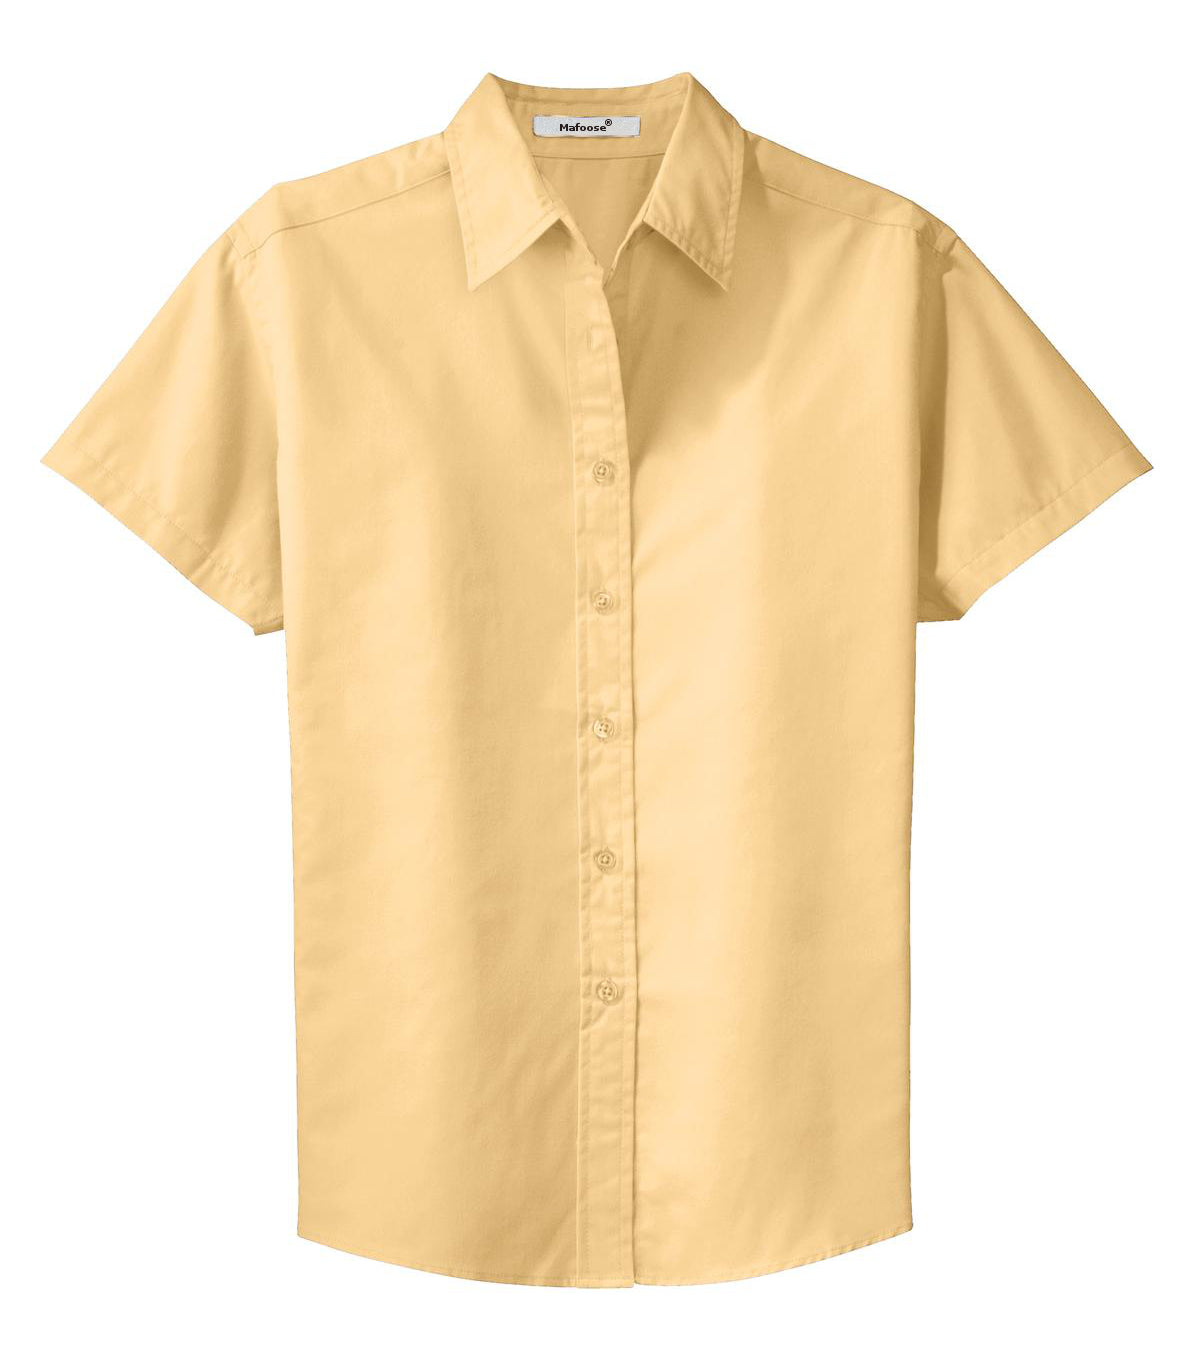 Mafoose Women's Comfortable Short Sleeve Easy Care Shirt Yellow-Front